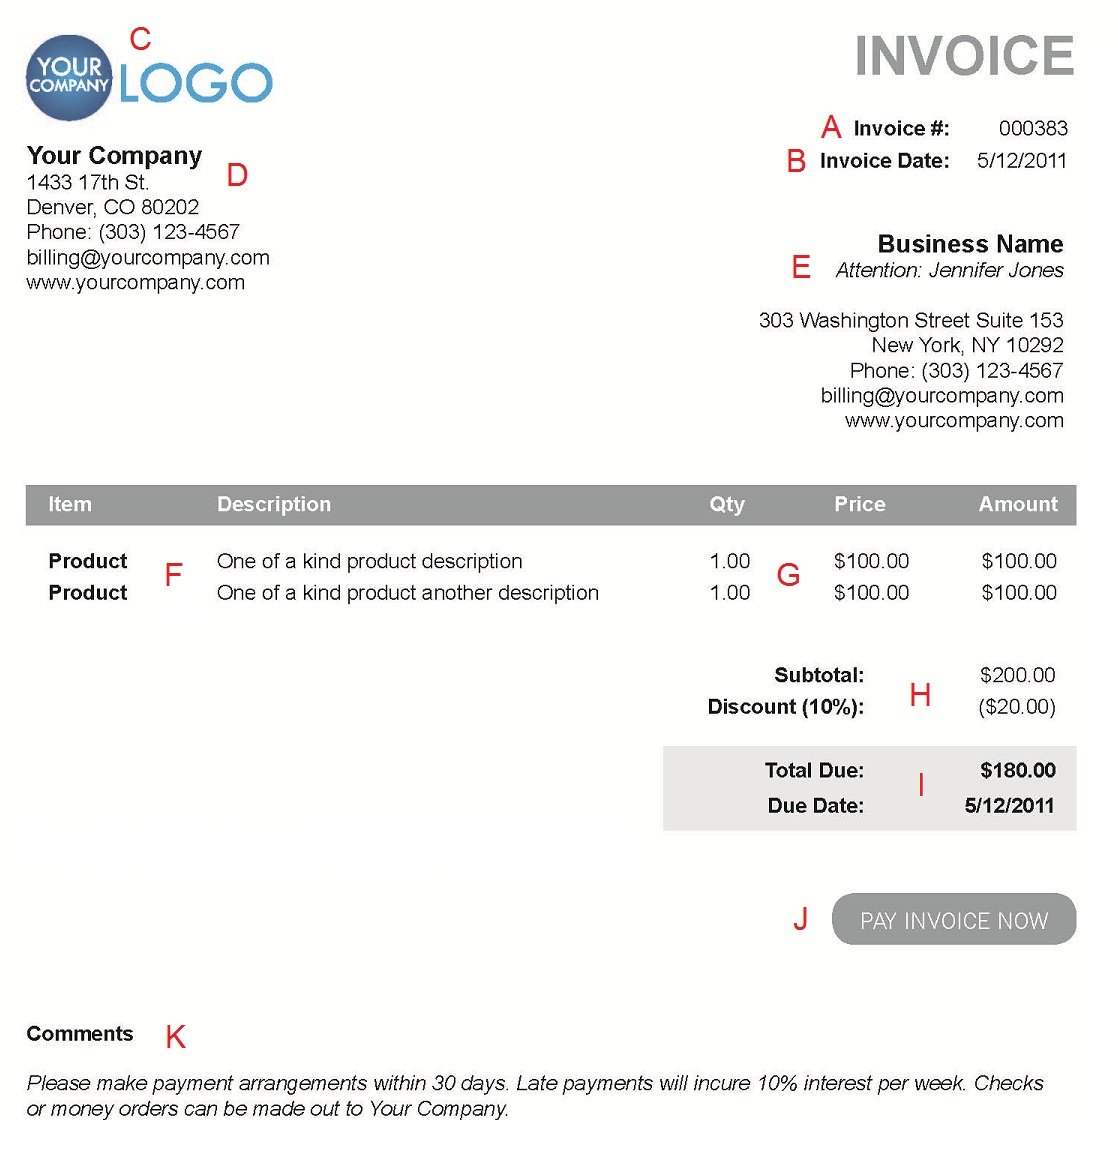 Angkajituus  Marvelous The  Different Sections Of An Electronic Payment Invoice With Fetching A  With Comely Auto Invoice Pricing Also Business Invoice Factoring In Addition Zoho Invoice App And Freelance Design Invoice Template As Well As Ebay Pay Invoice Additionally Shopify Invoices From Paysimplecom With Angkajituus  Fetching The  Different Sections Of An Electronic Payment Invoice With Comely A  And Marvelous Auto Invoice Pricing Also Business Invoice Factoring In Addition Zoho Invoice App From Paysimplecom